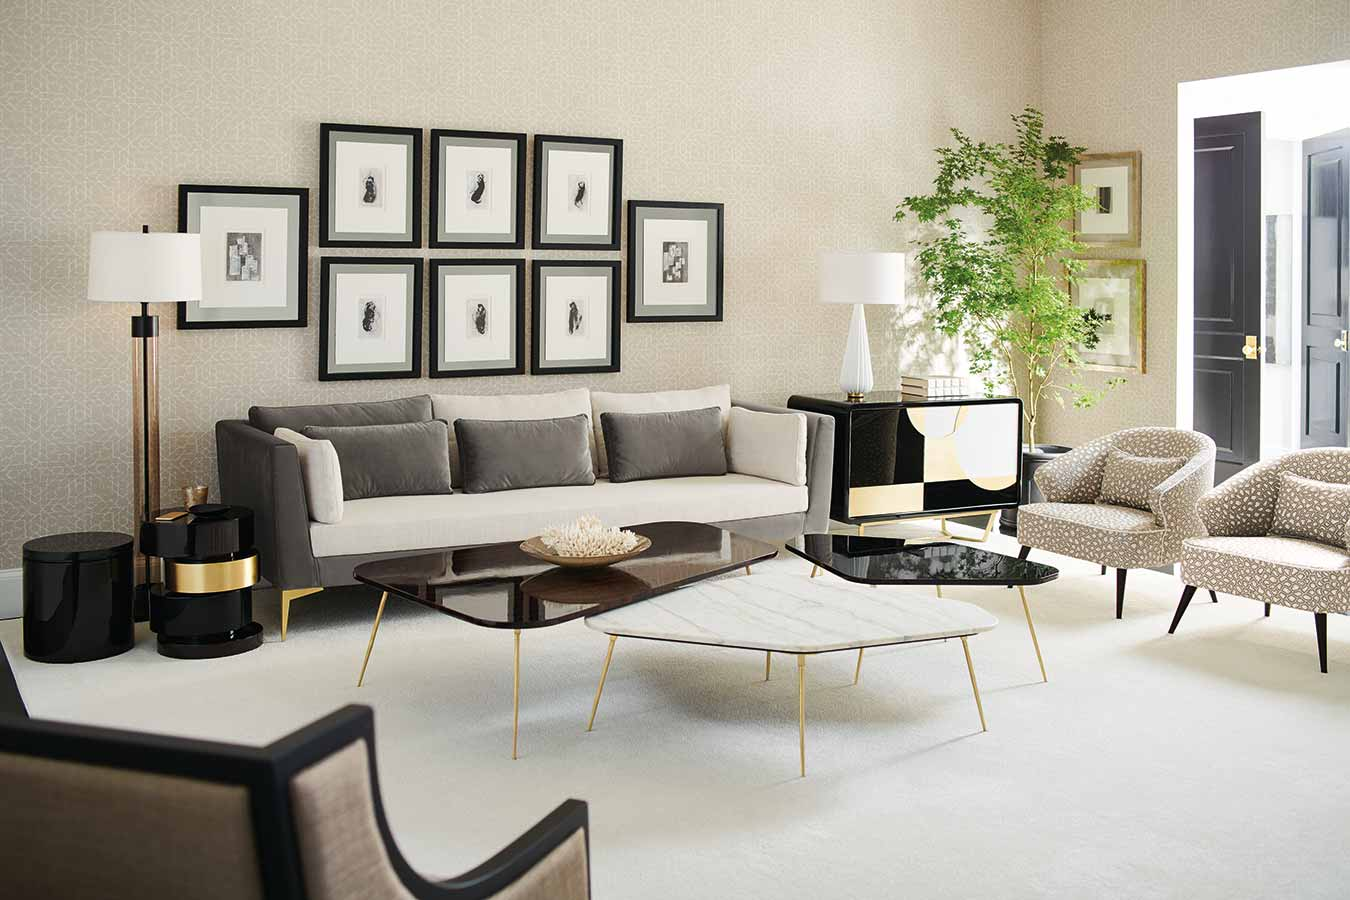 Living Room | Contemporary Luxury Designer Modern Exclusive Handcrafted Furniture | Johannesburg